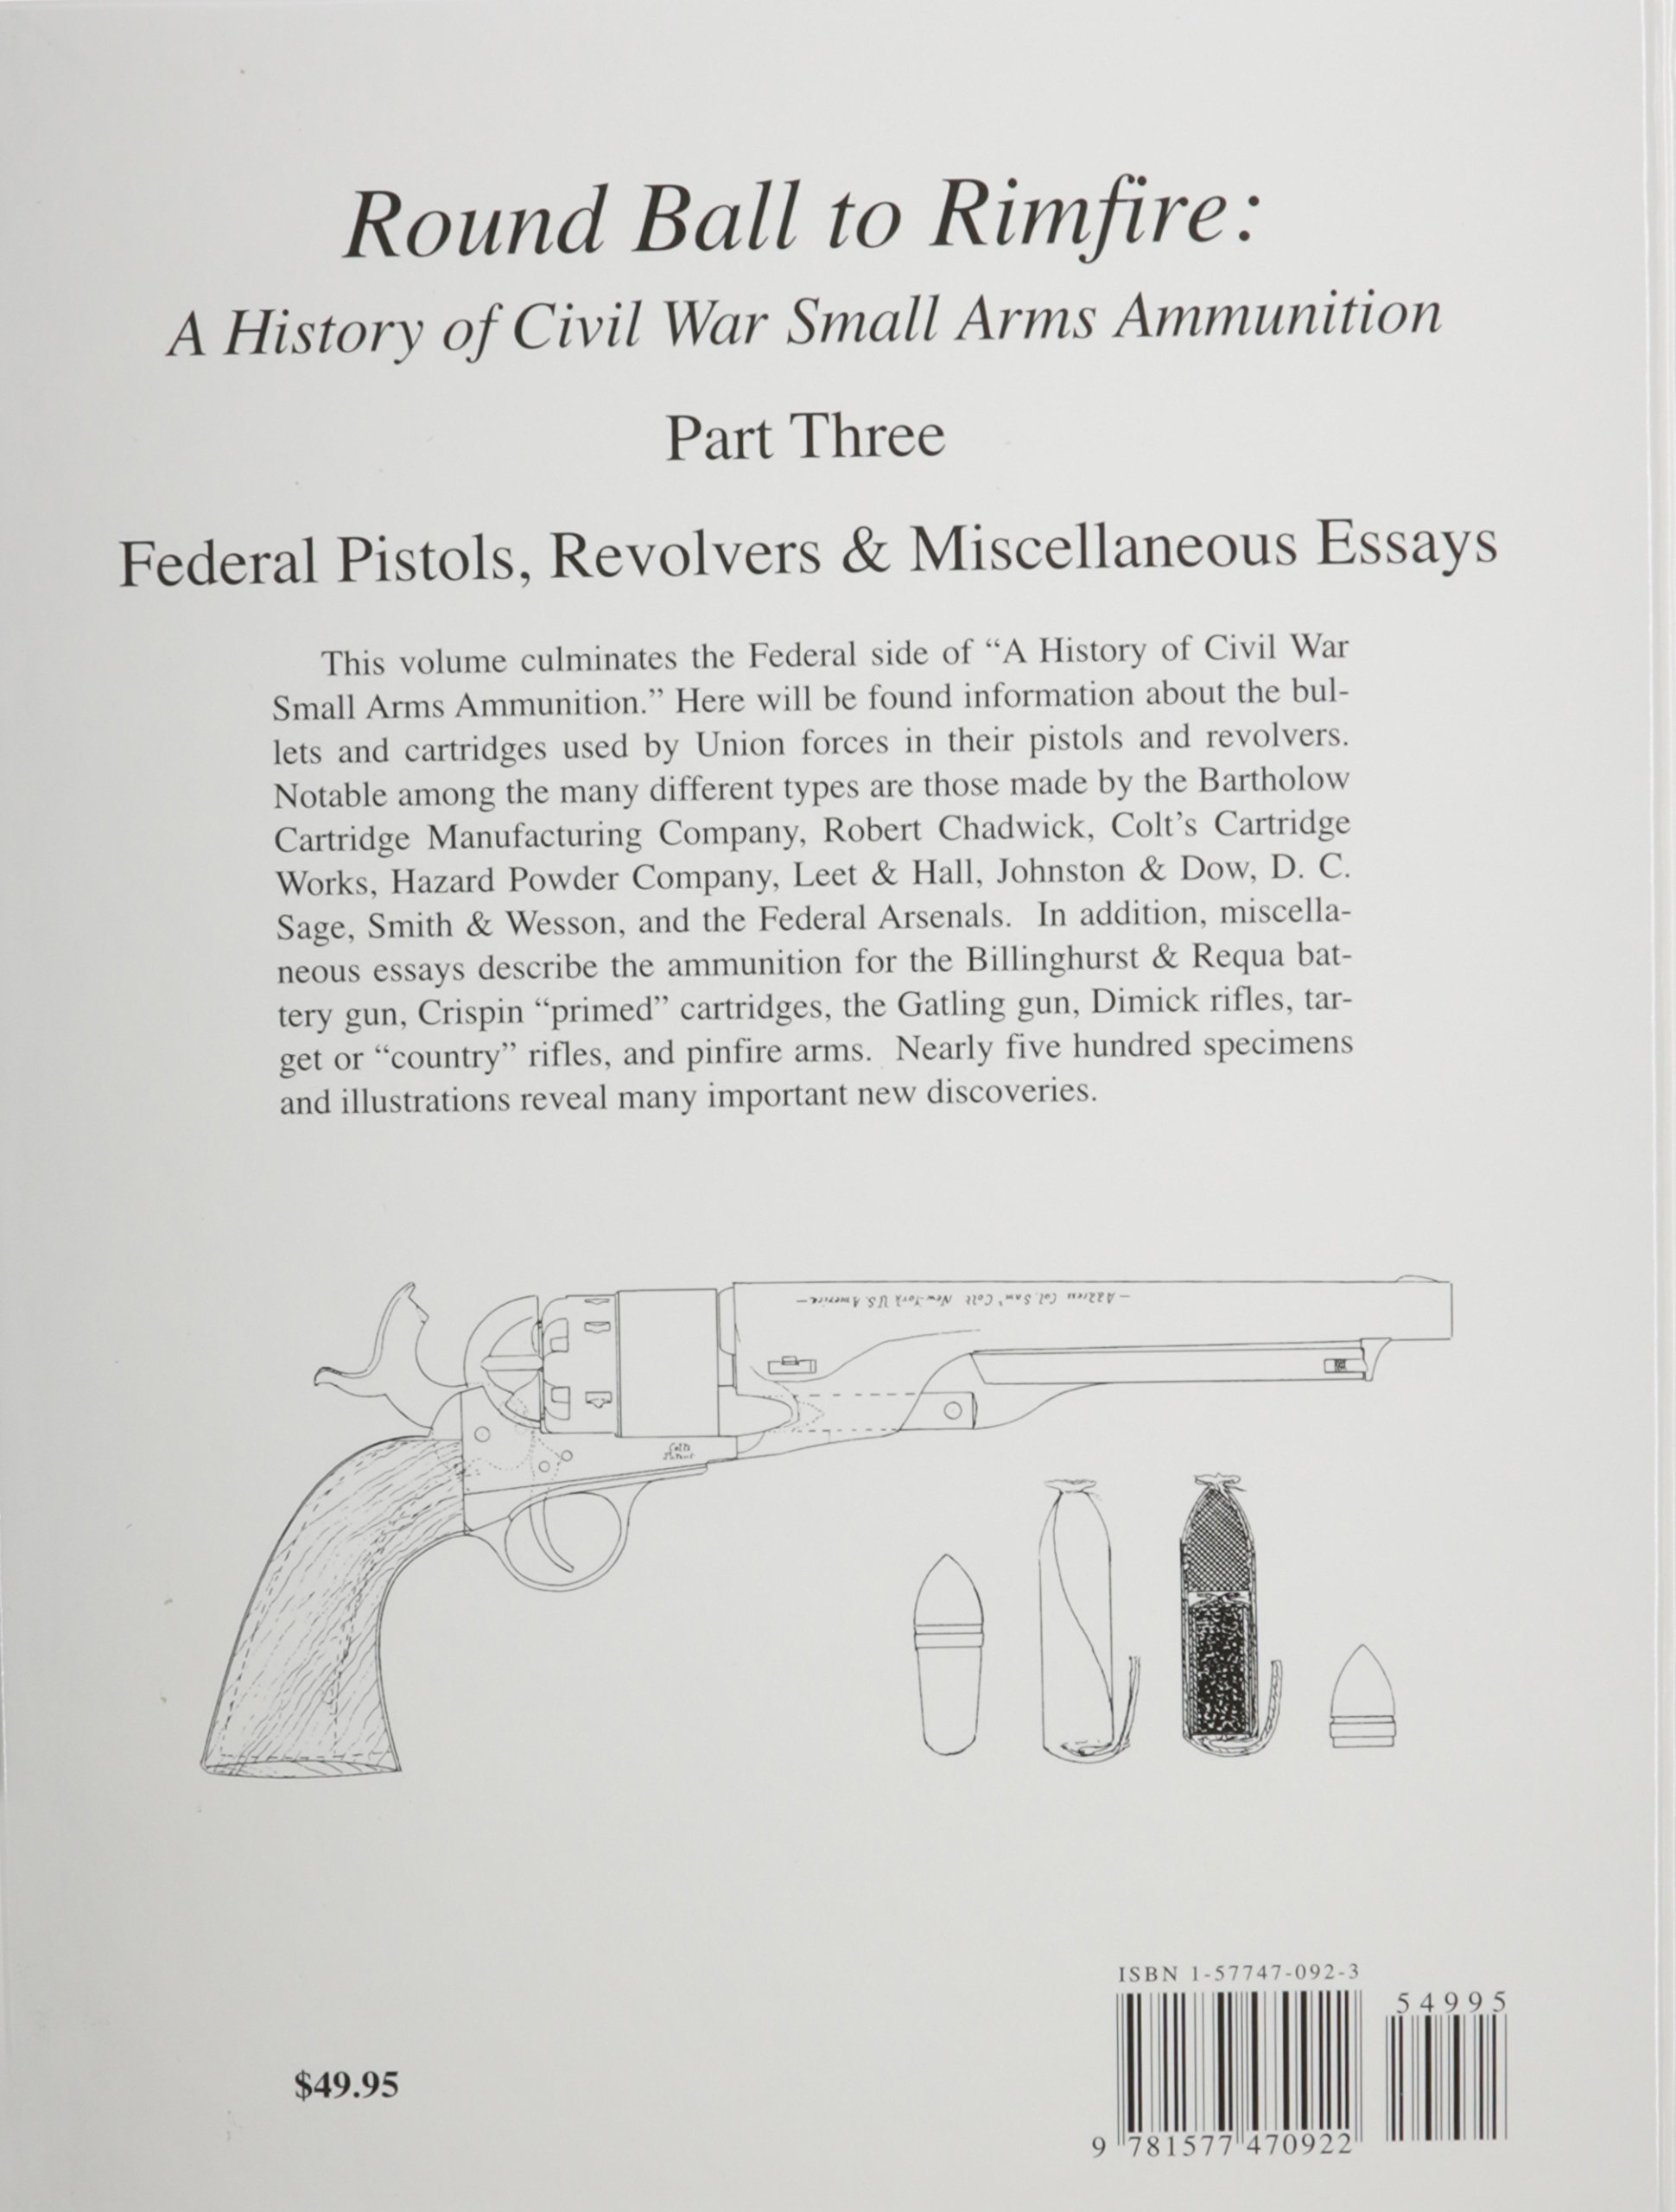 round ball to rimfire a history of civil war small arms round ball to rimfire a history of civil war small arms ammunition part three federal pistols revolvers miscellaneous essays dean s thomas